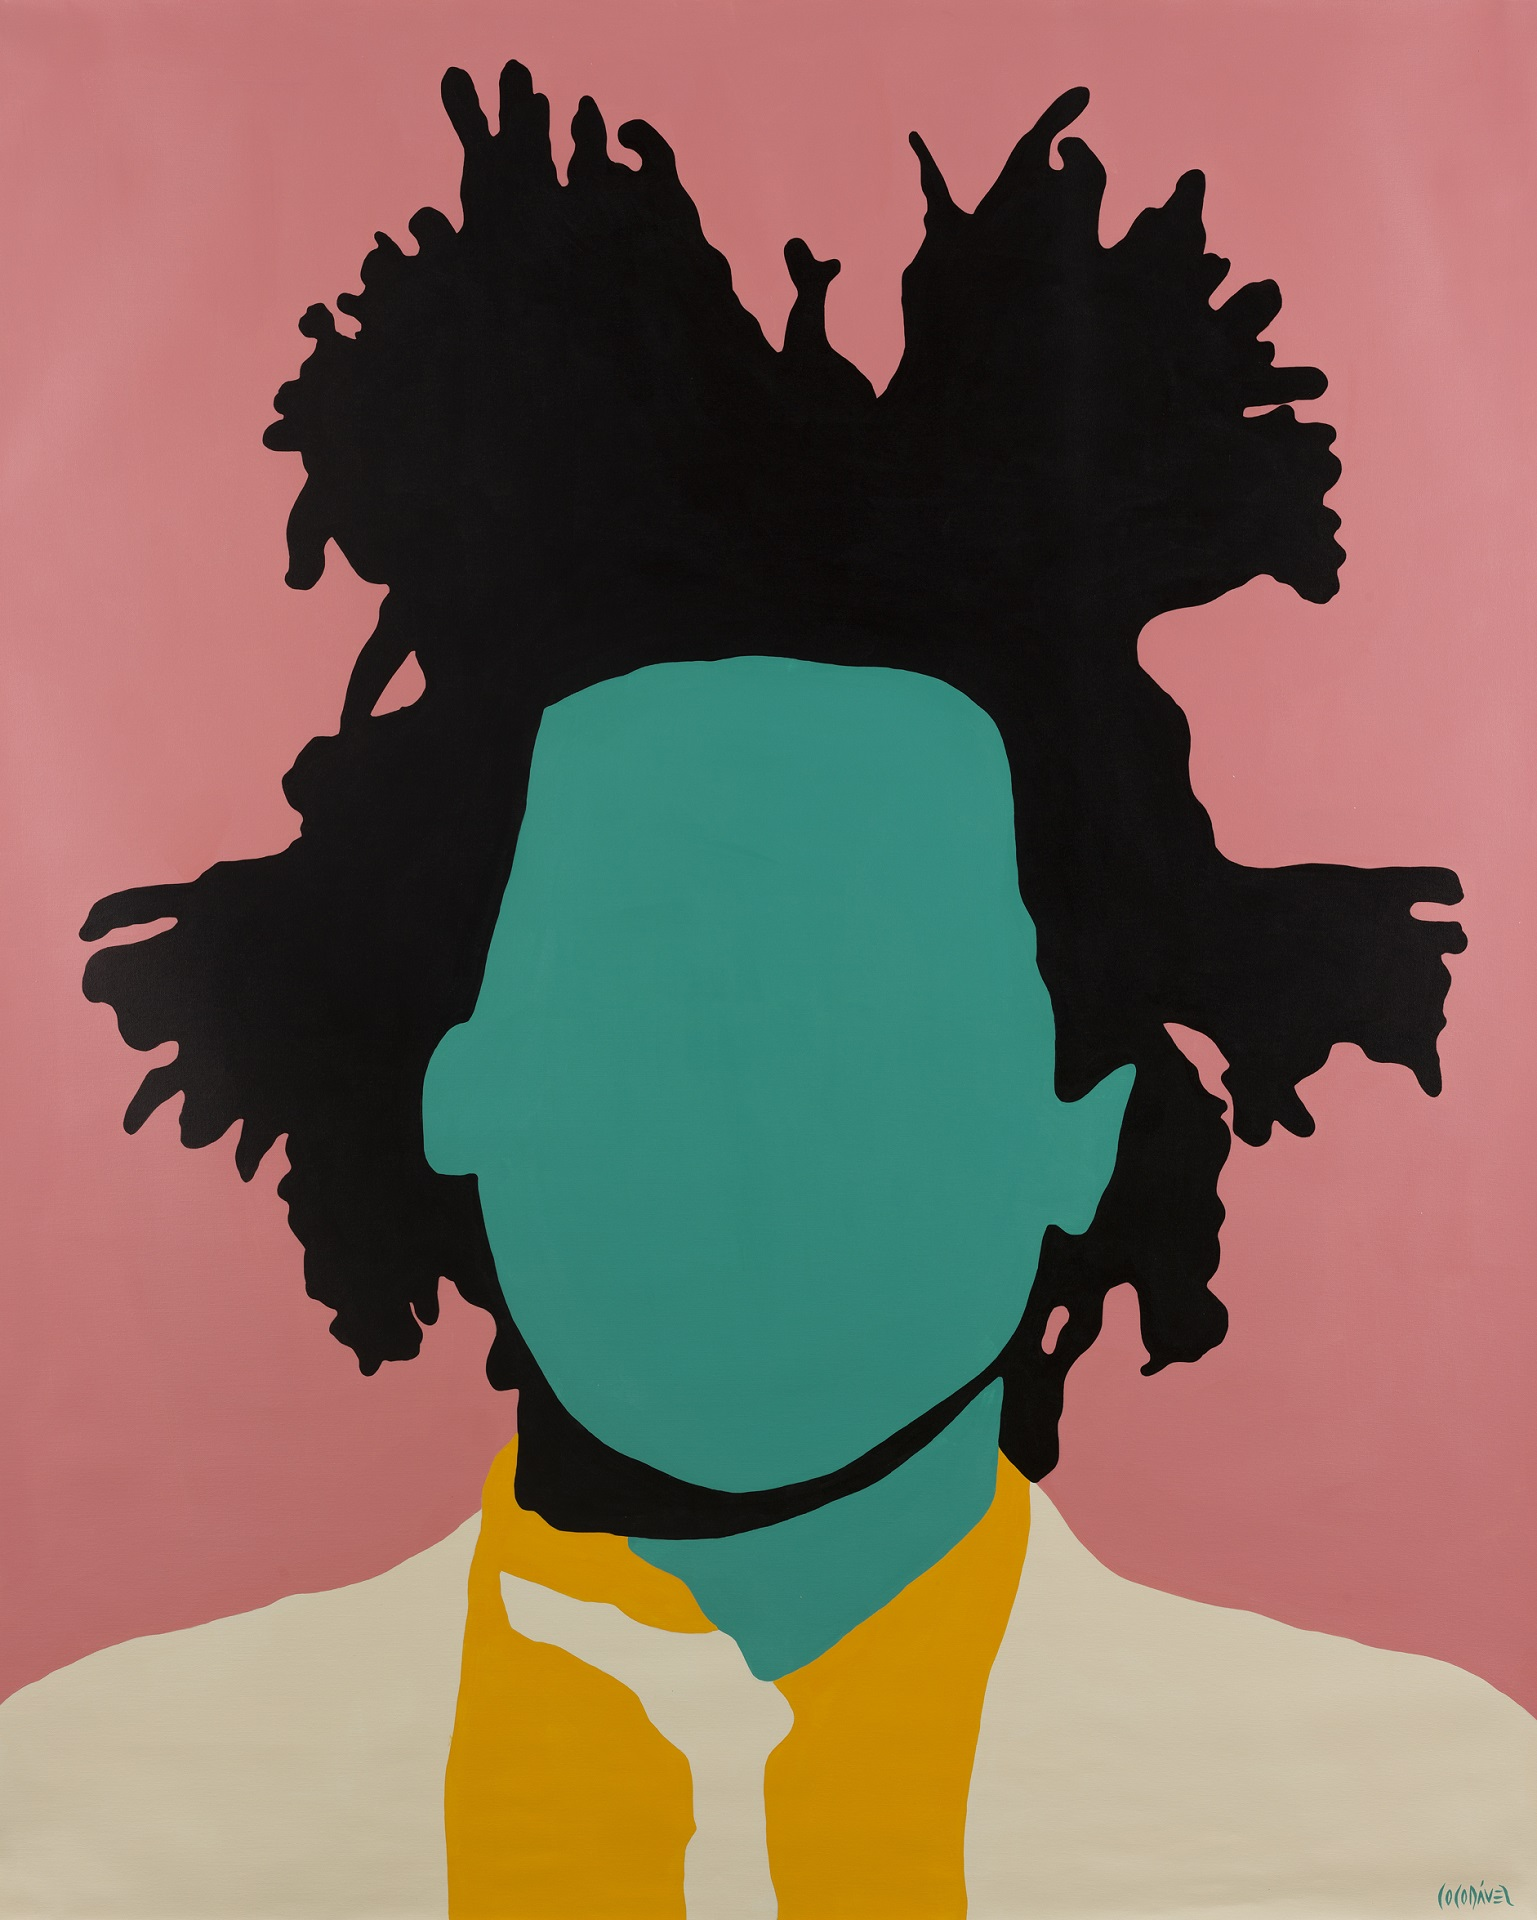 Jean-Michel Basquiat by Coco Dávez